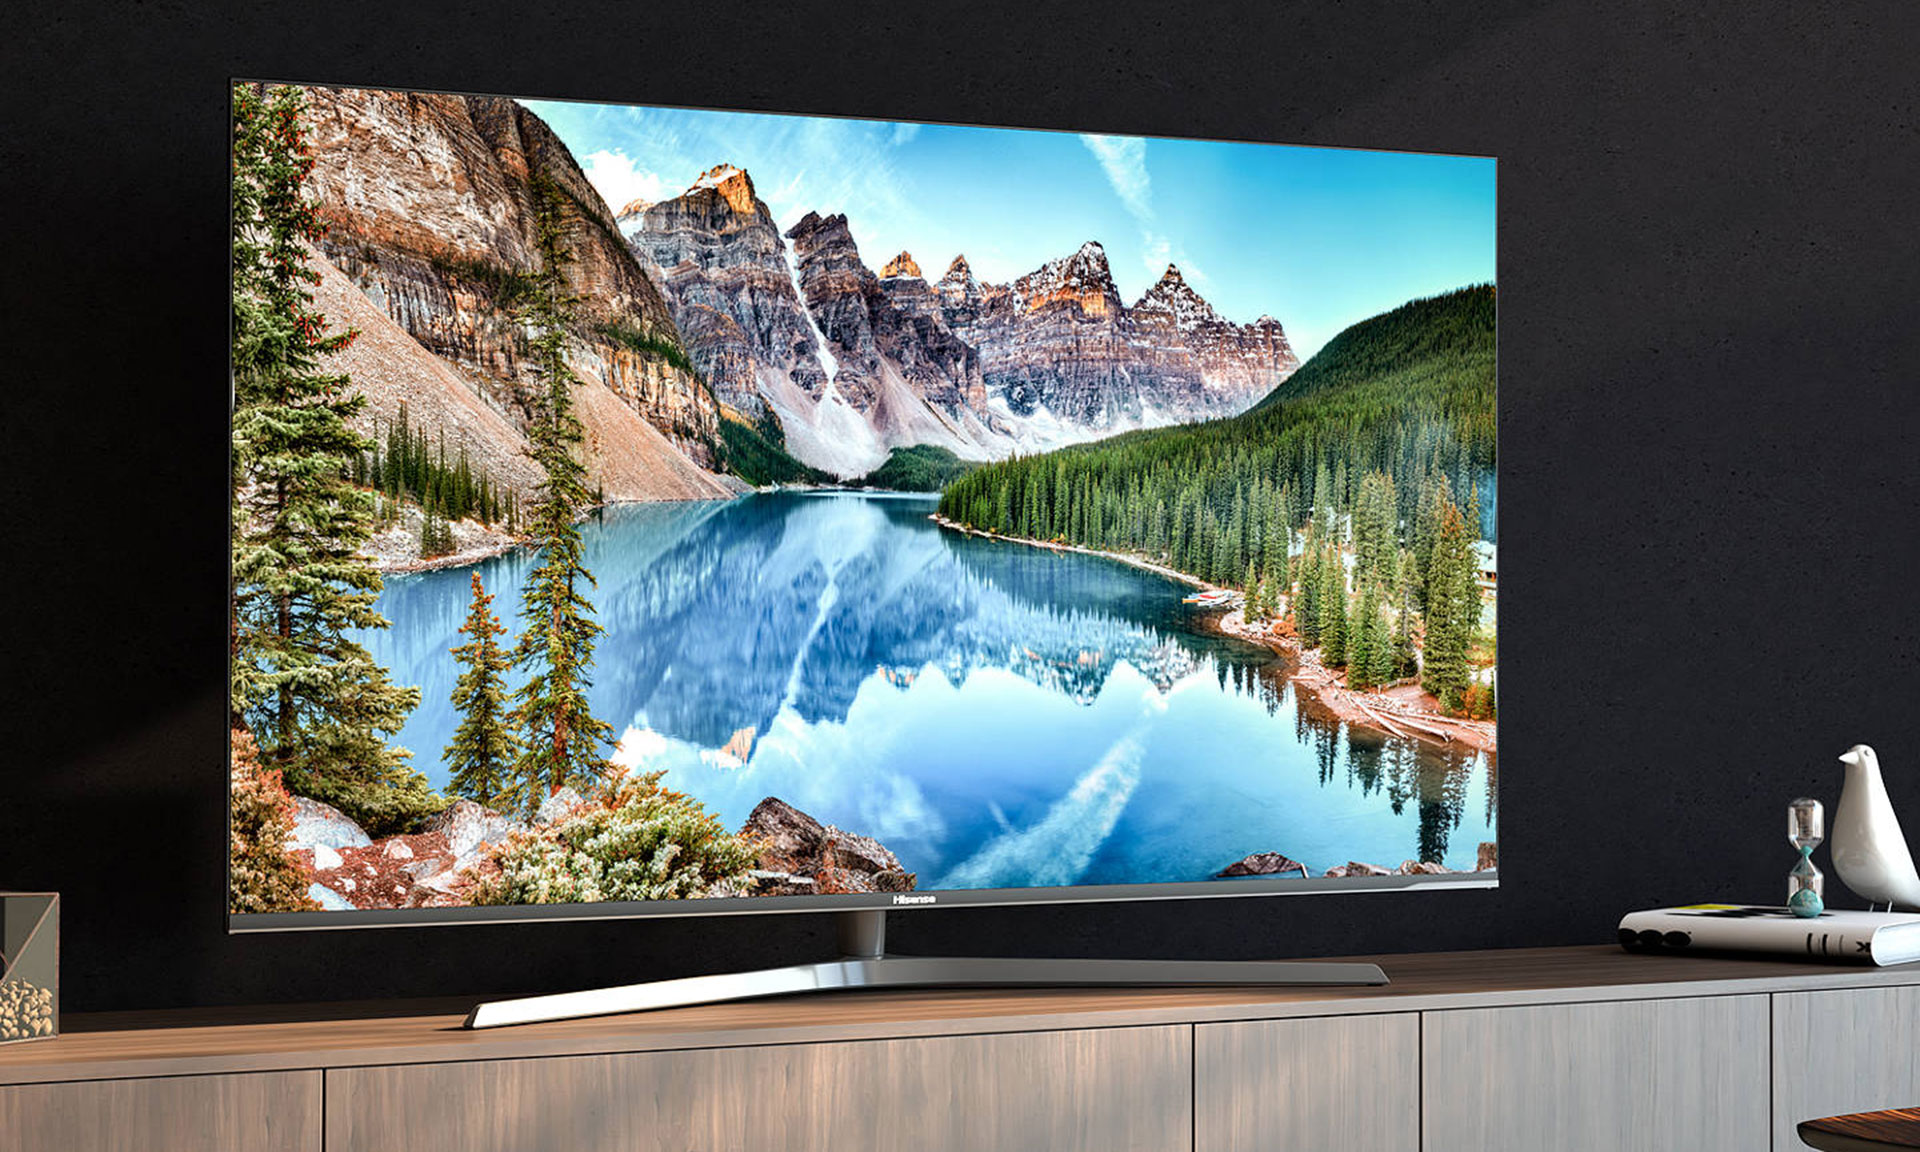 Should you buy a Hisense TV over an LG or Samsung? – Which ...